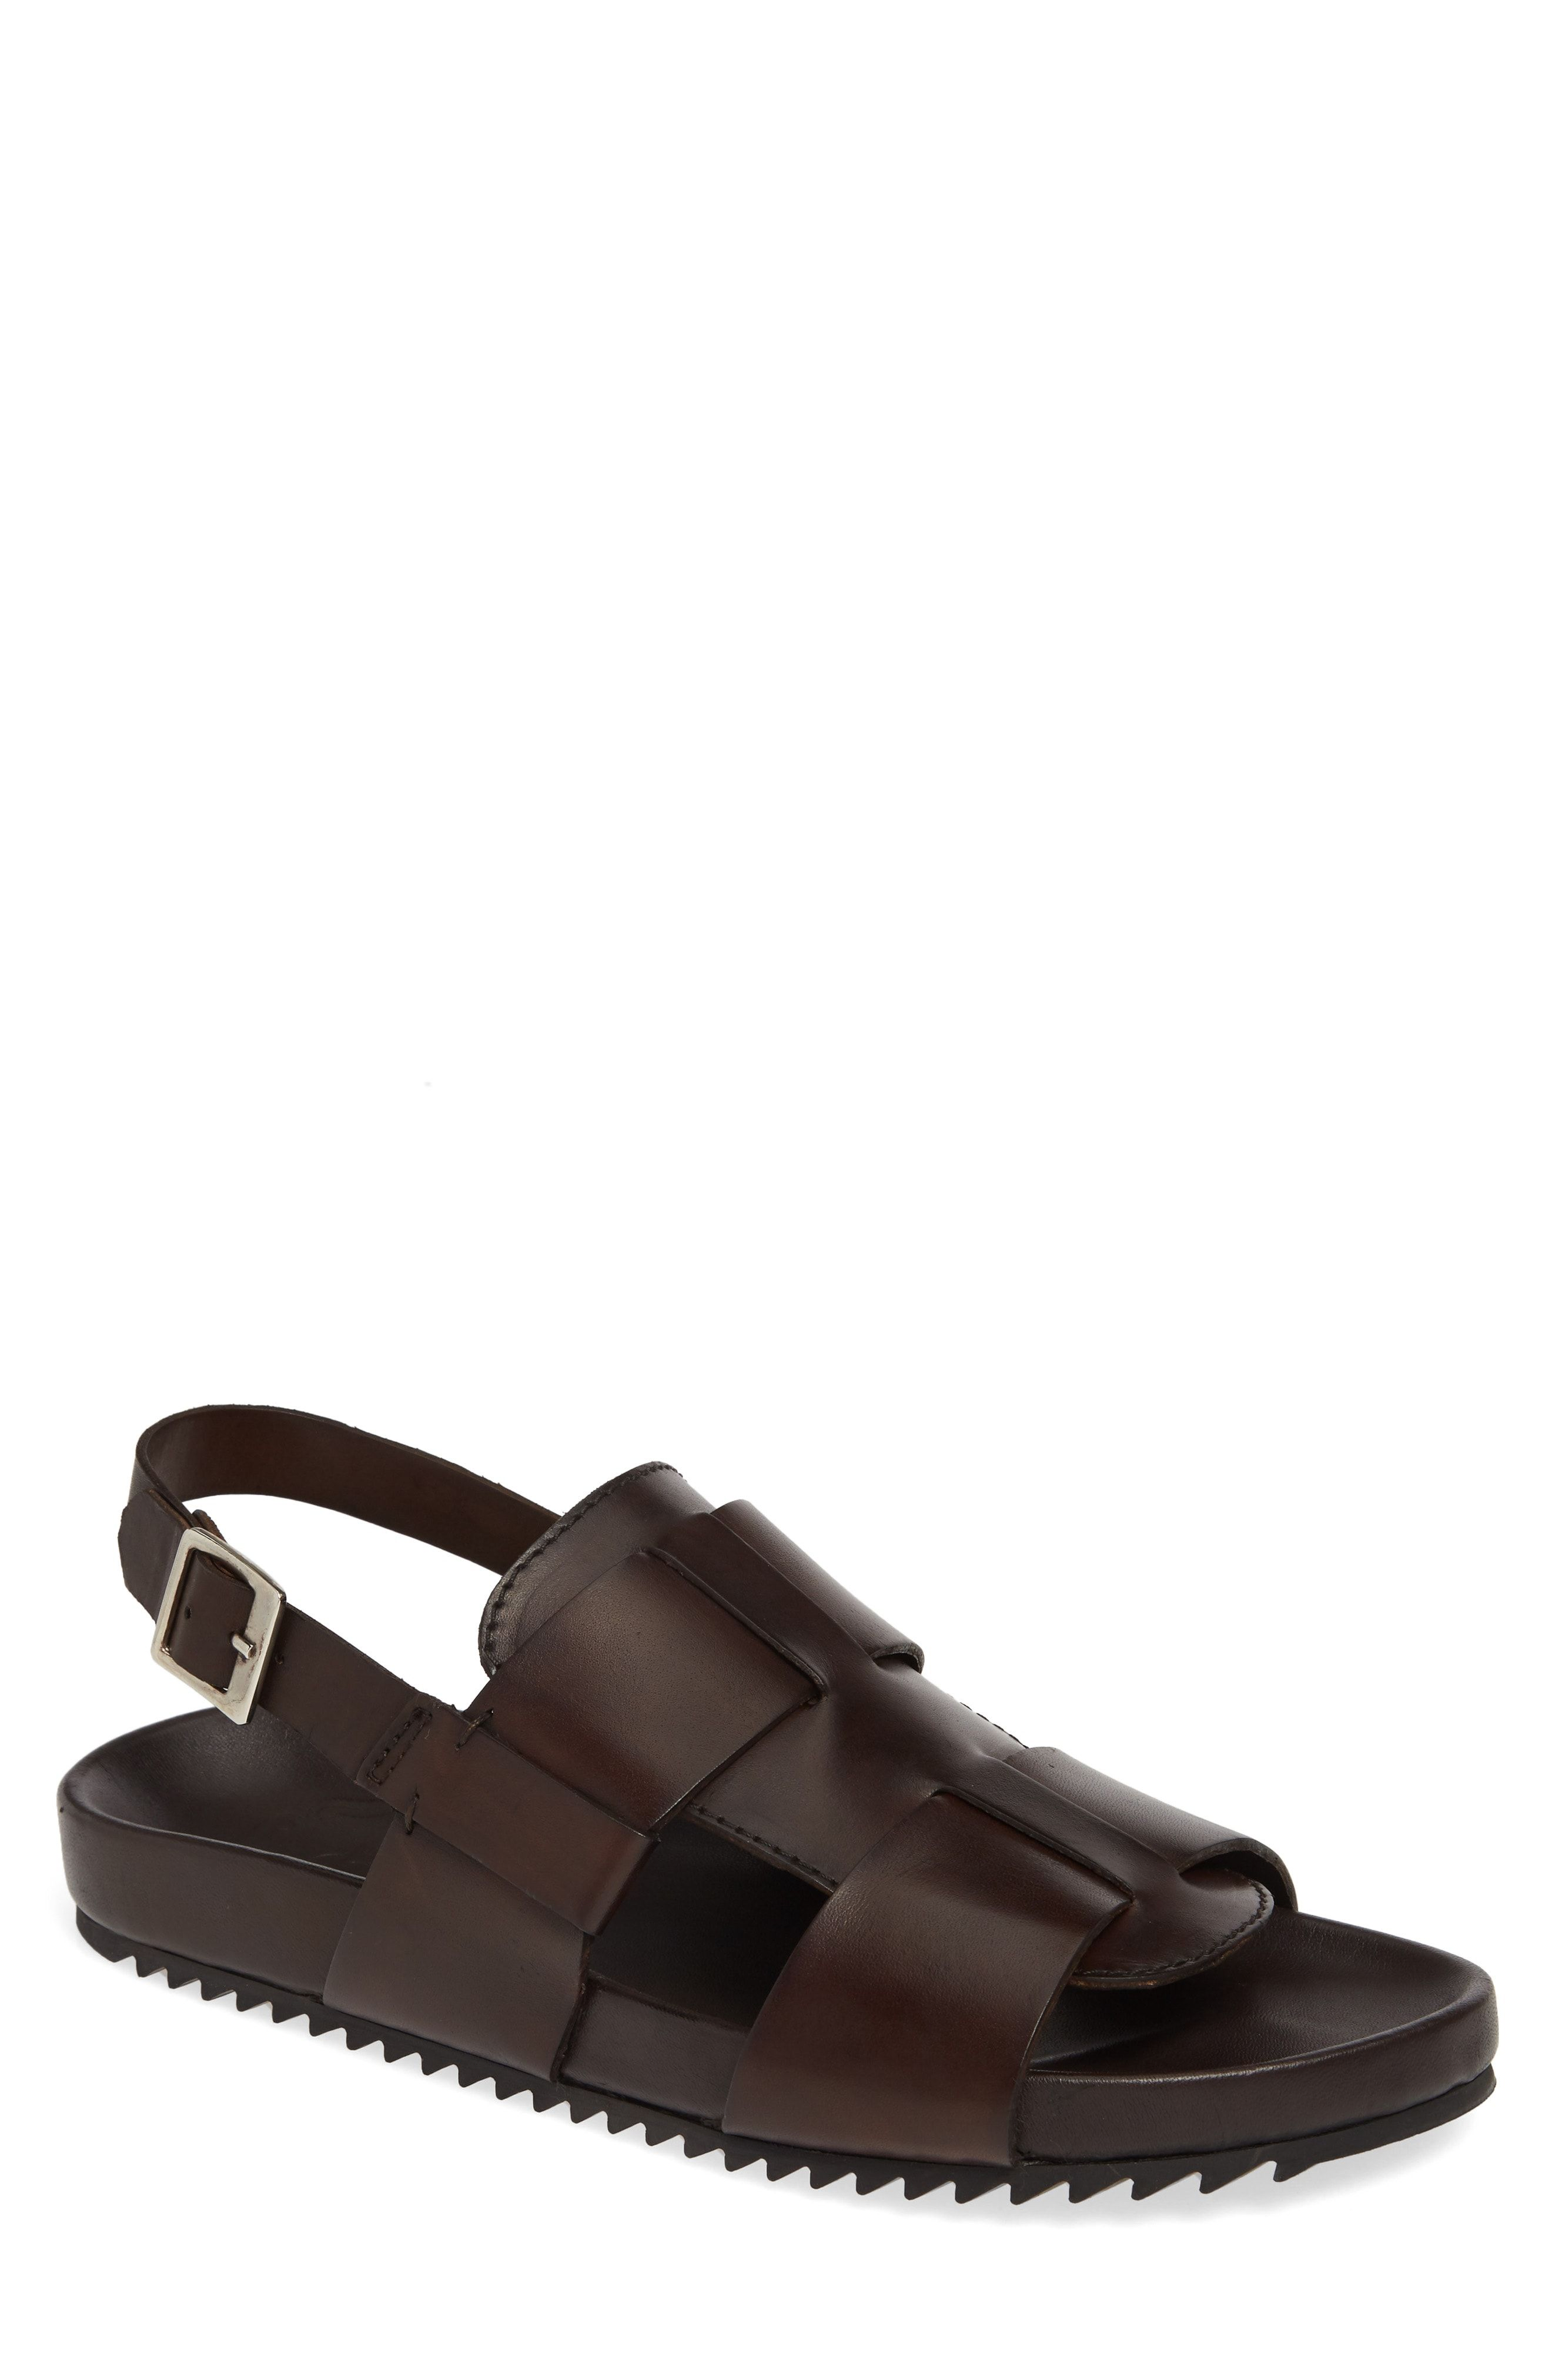 Grenson Wiley Sandal Grenson Shoes In 2019 Leather